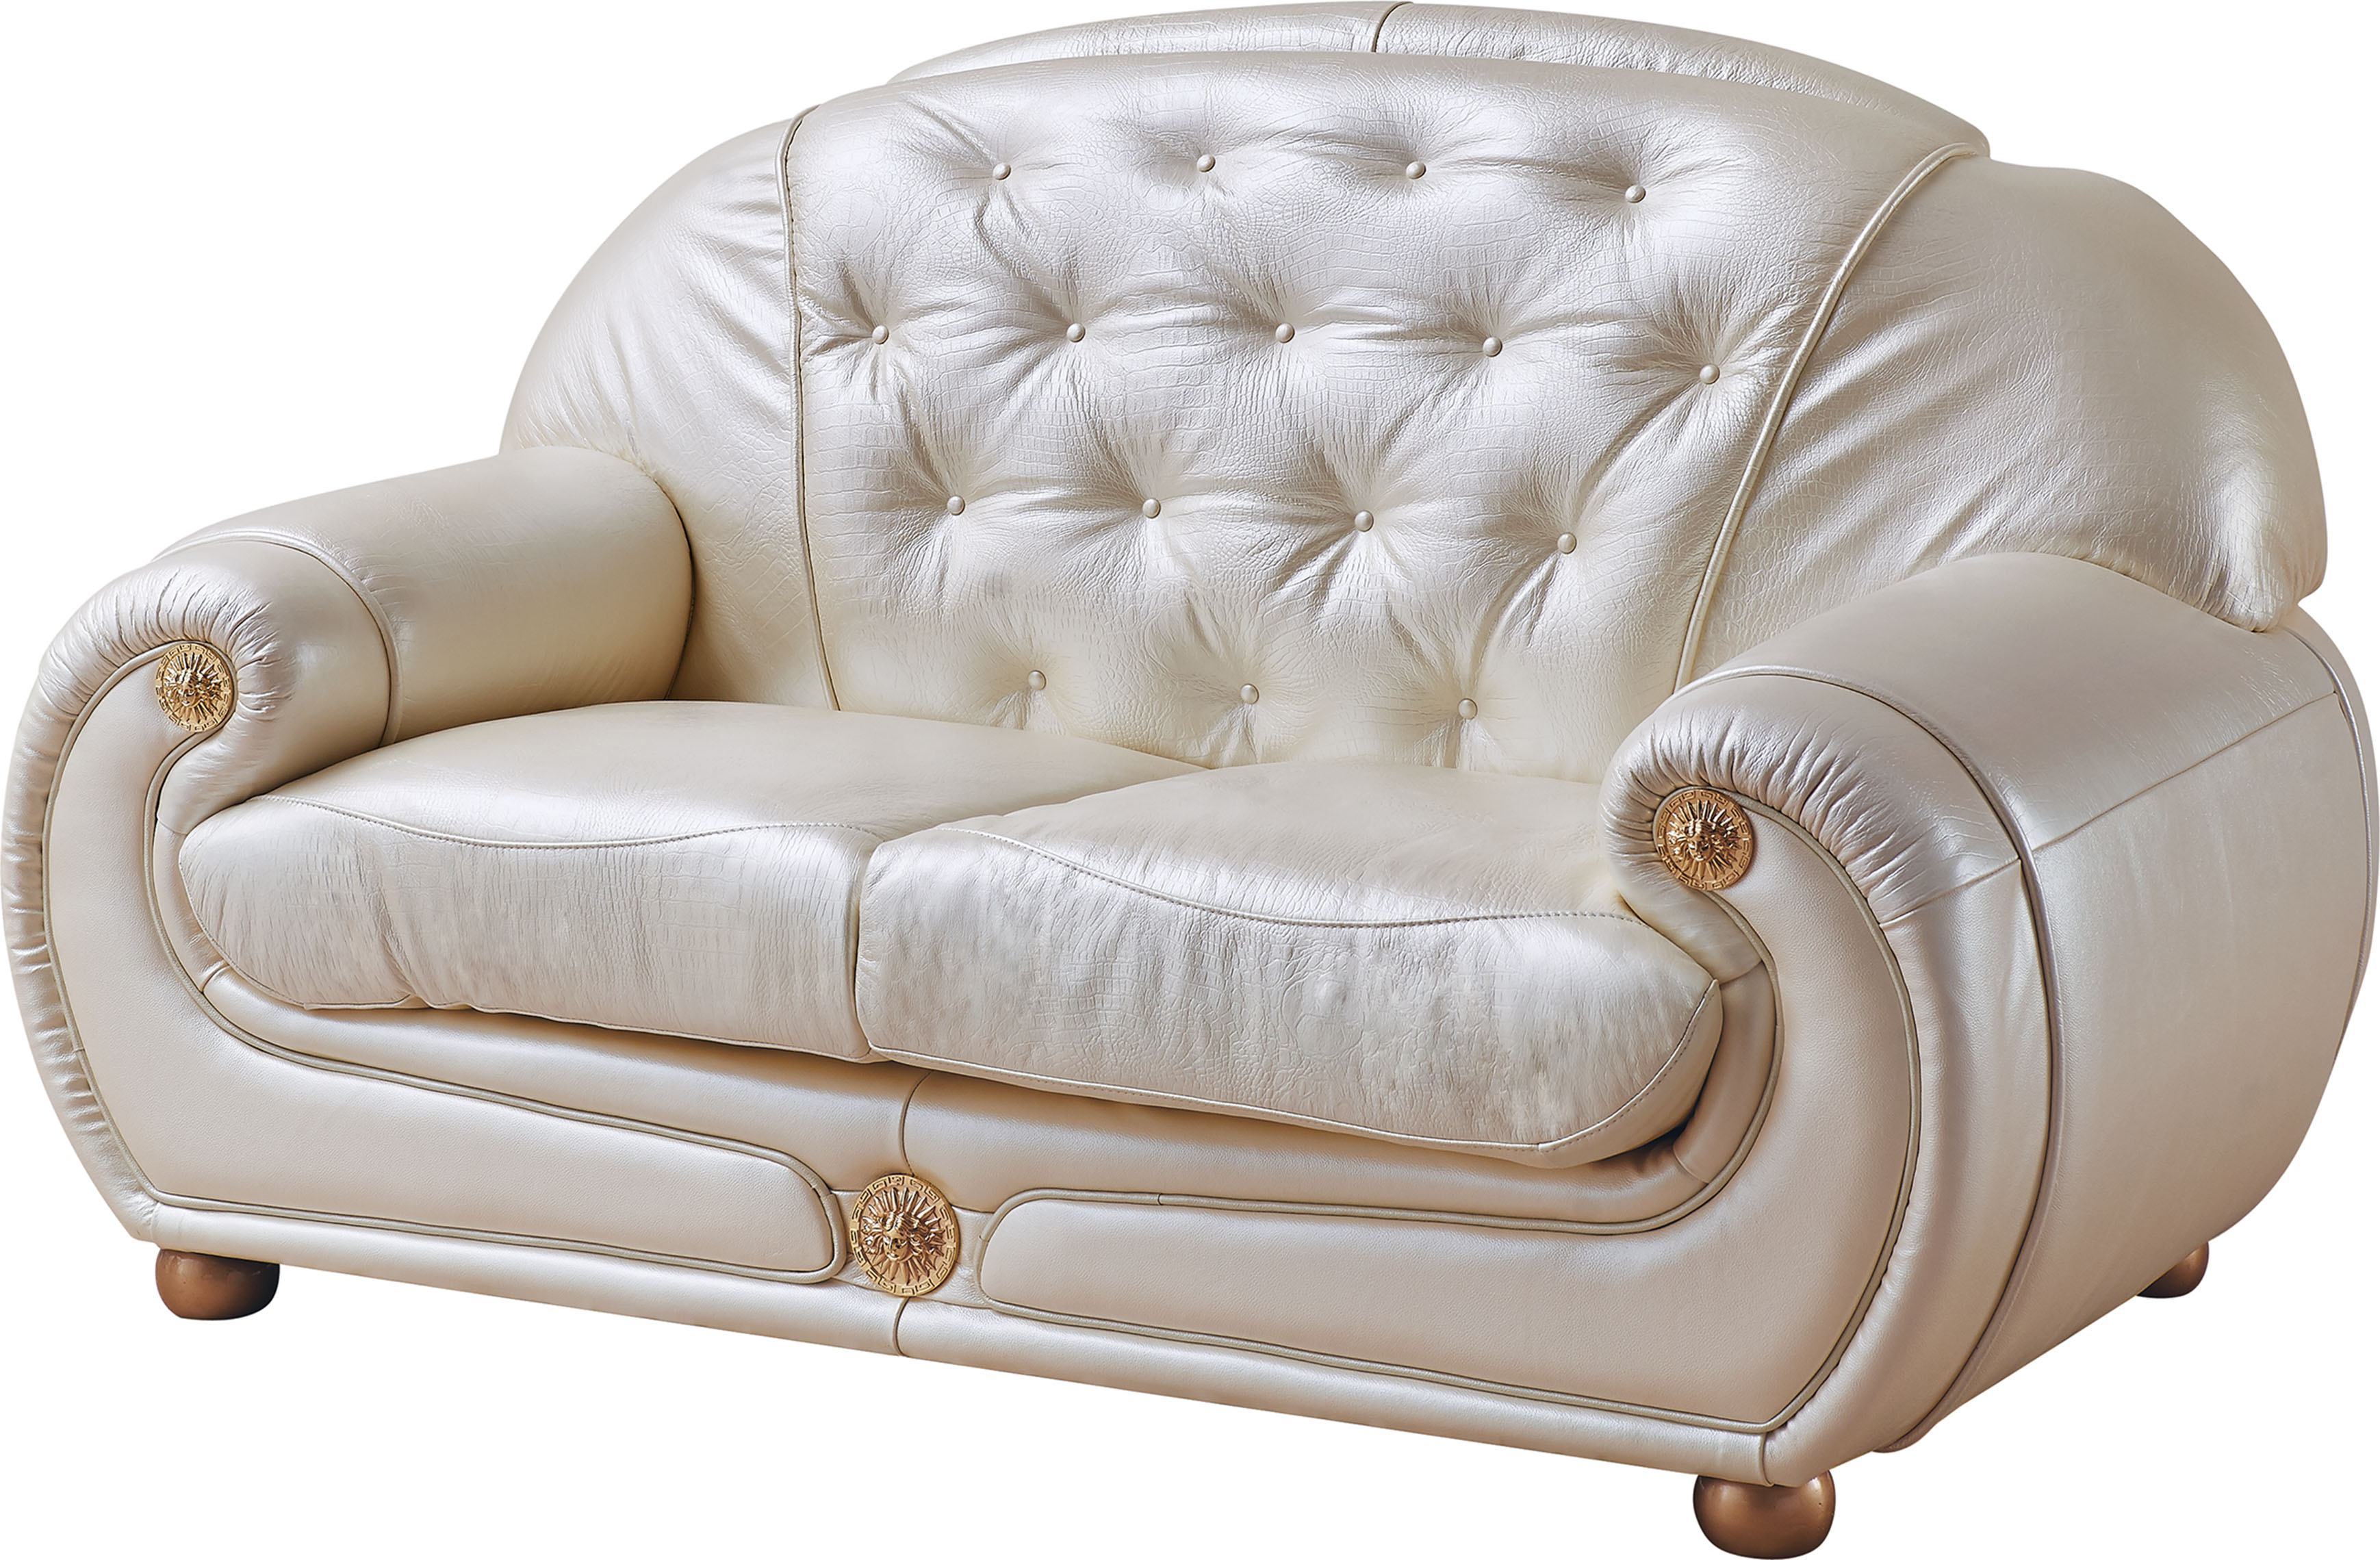 Giza Full Leather in Beige Sofas Loveseats and Chairs